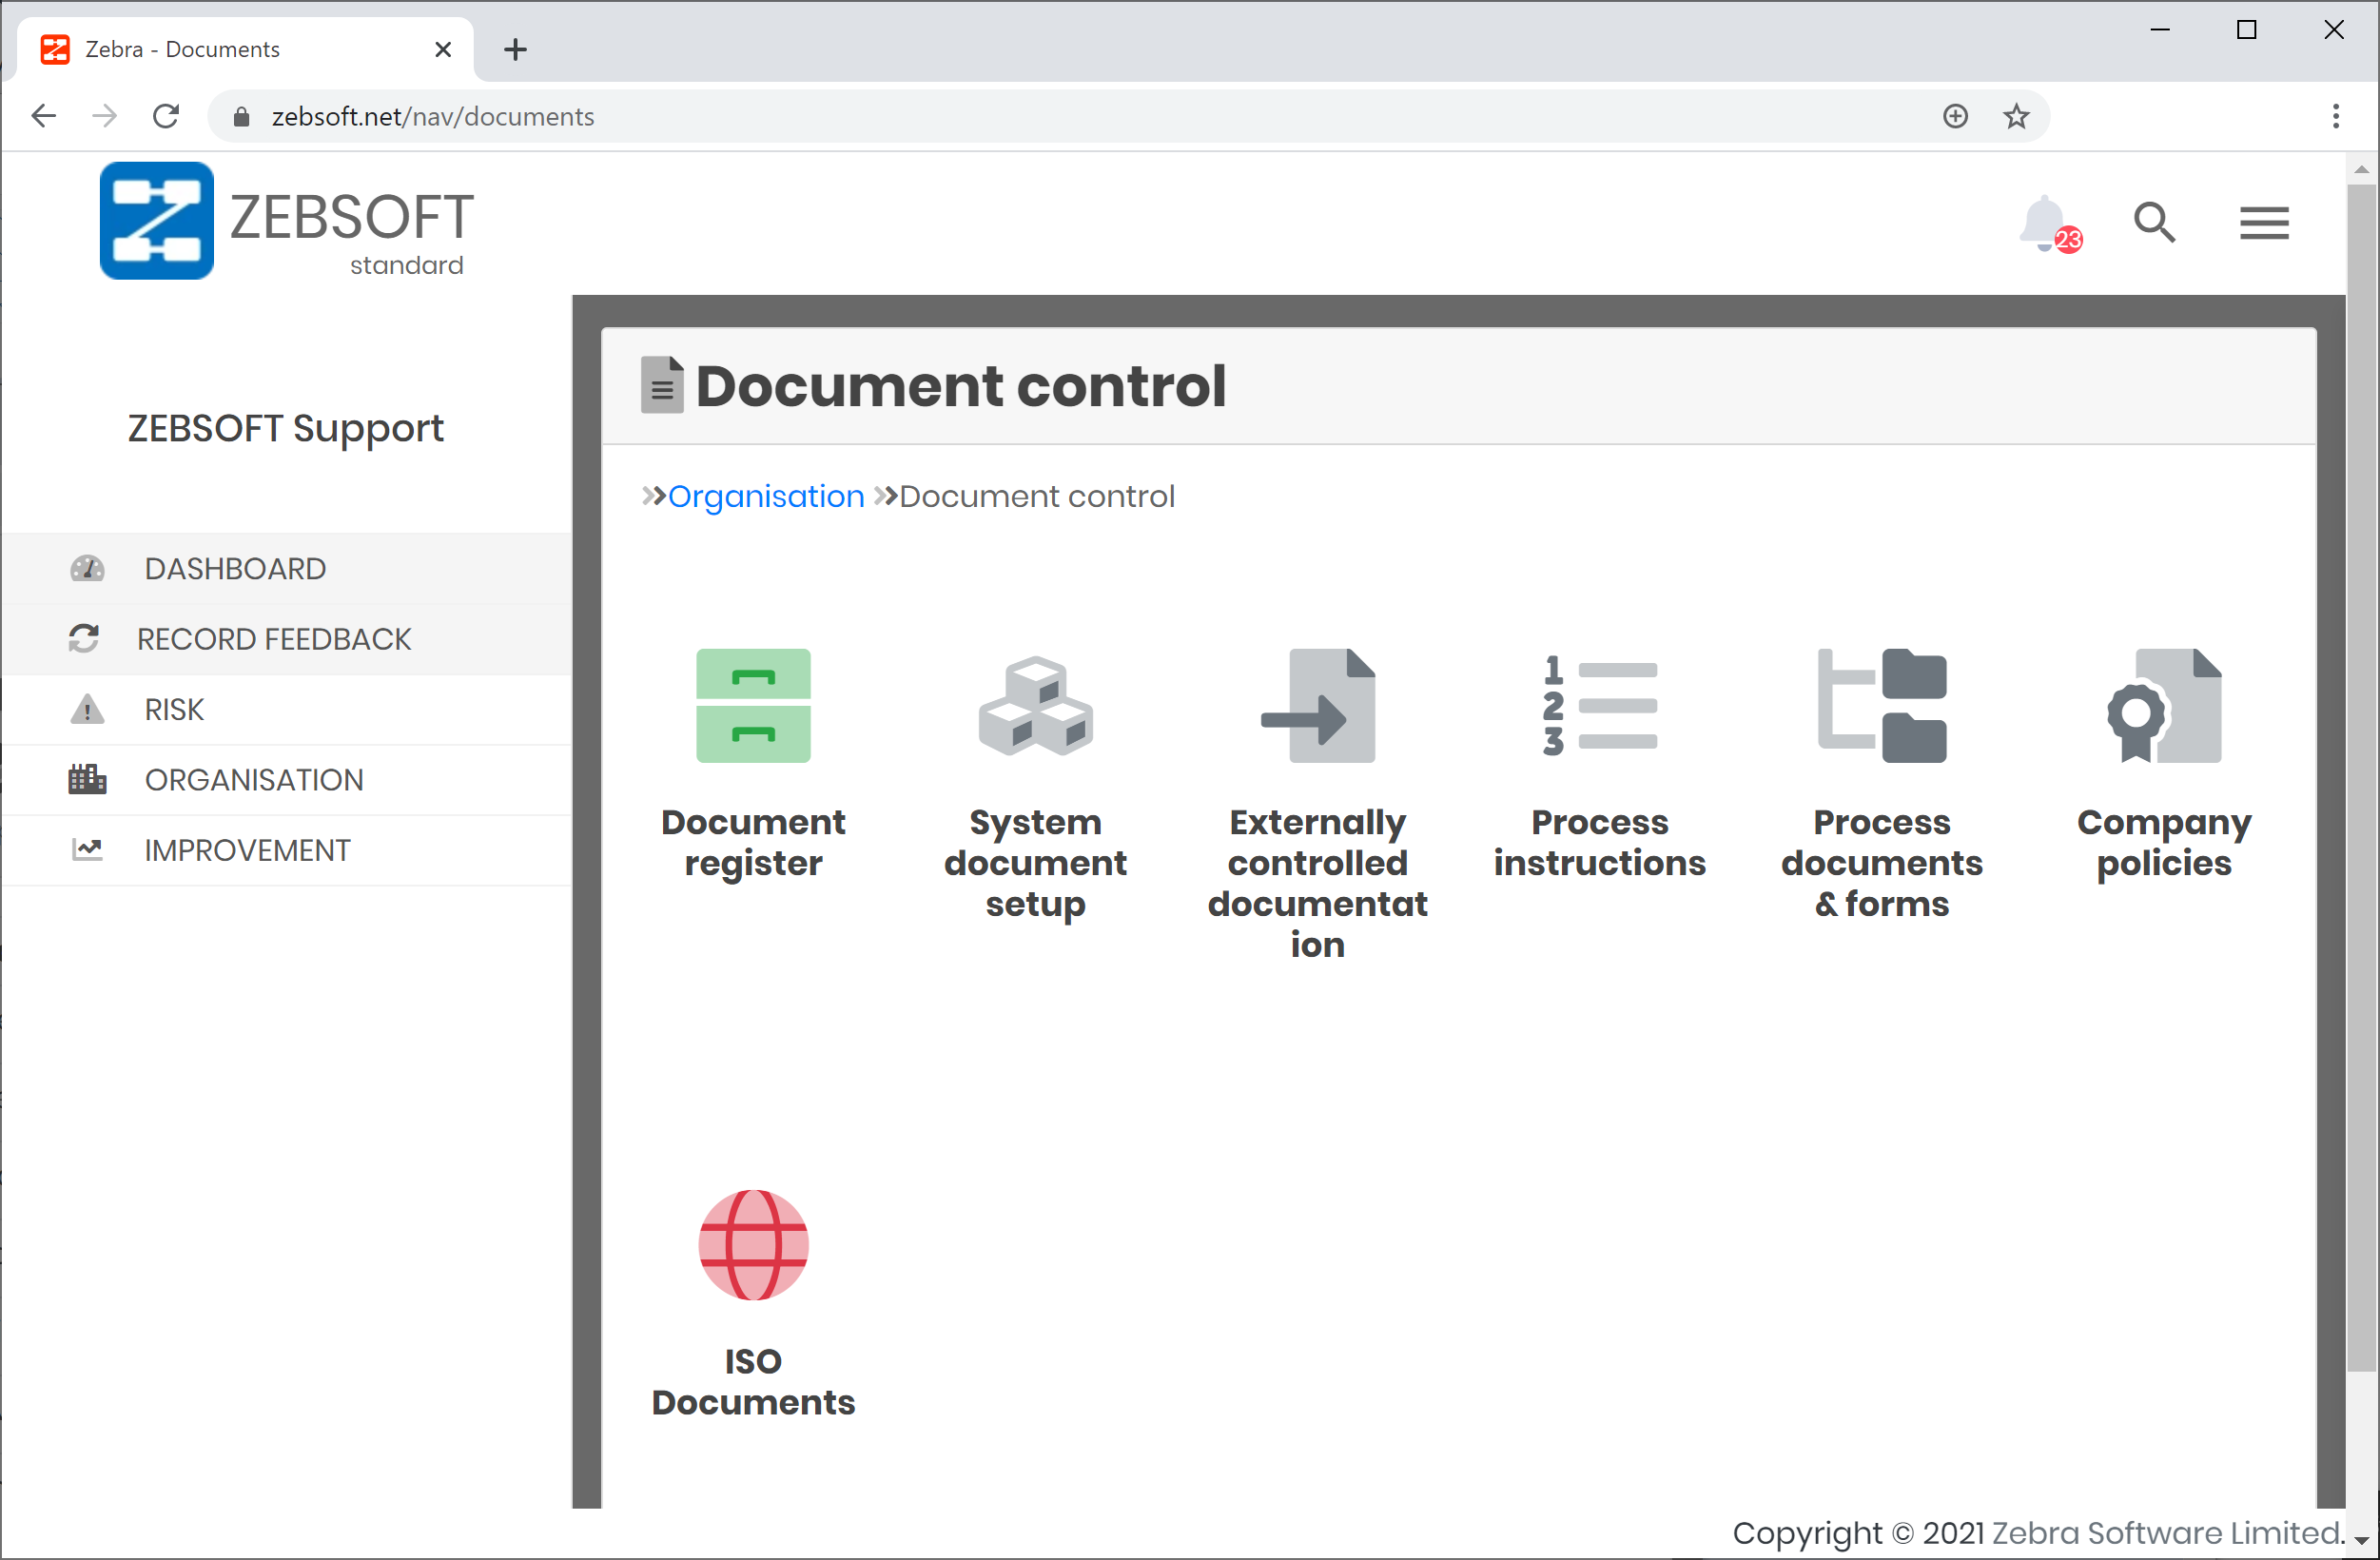 Control of documented information is easy with ZEBSOFT